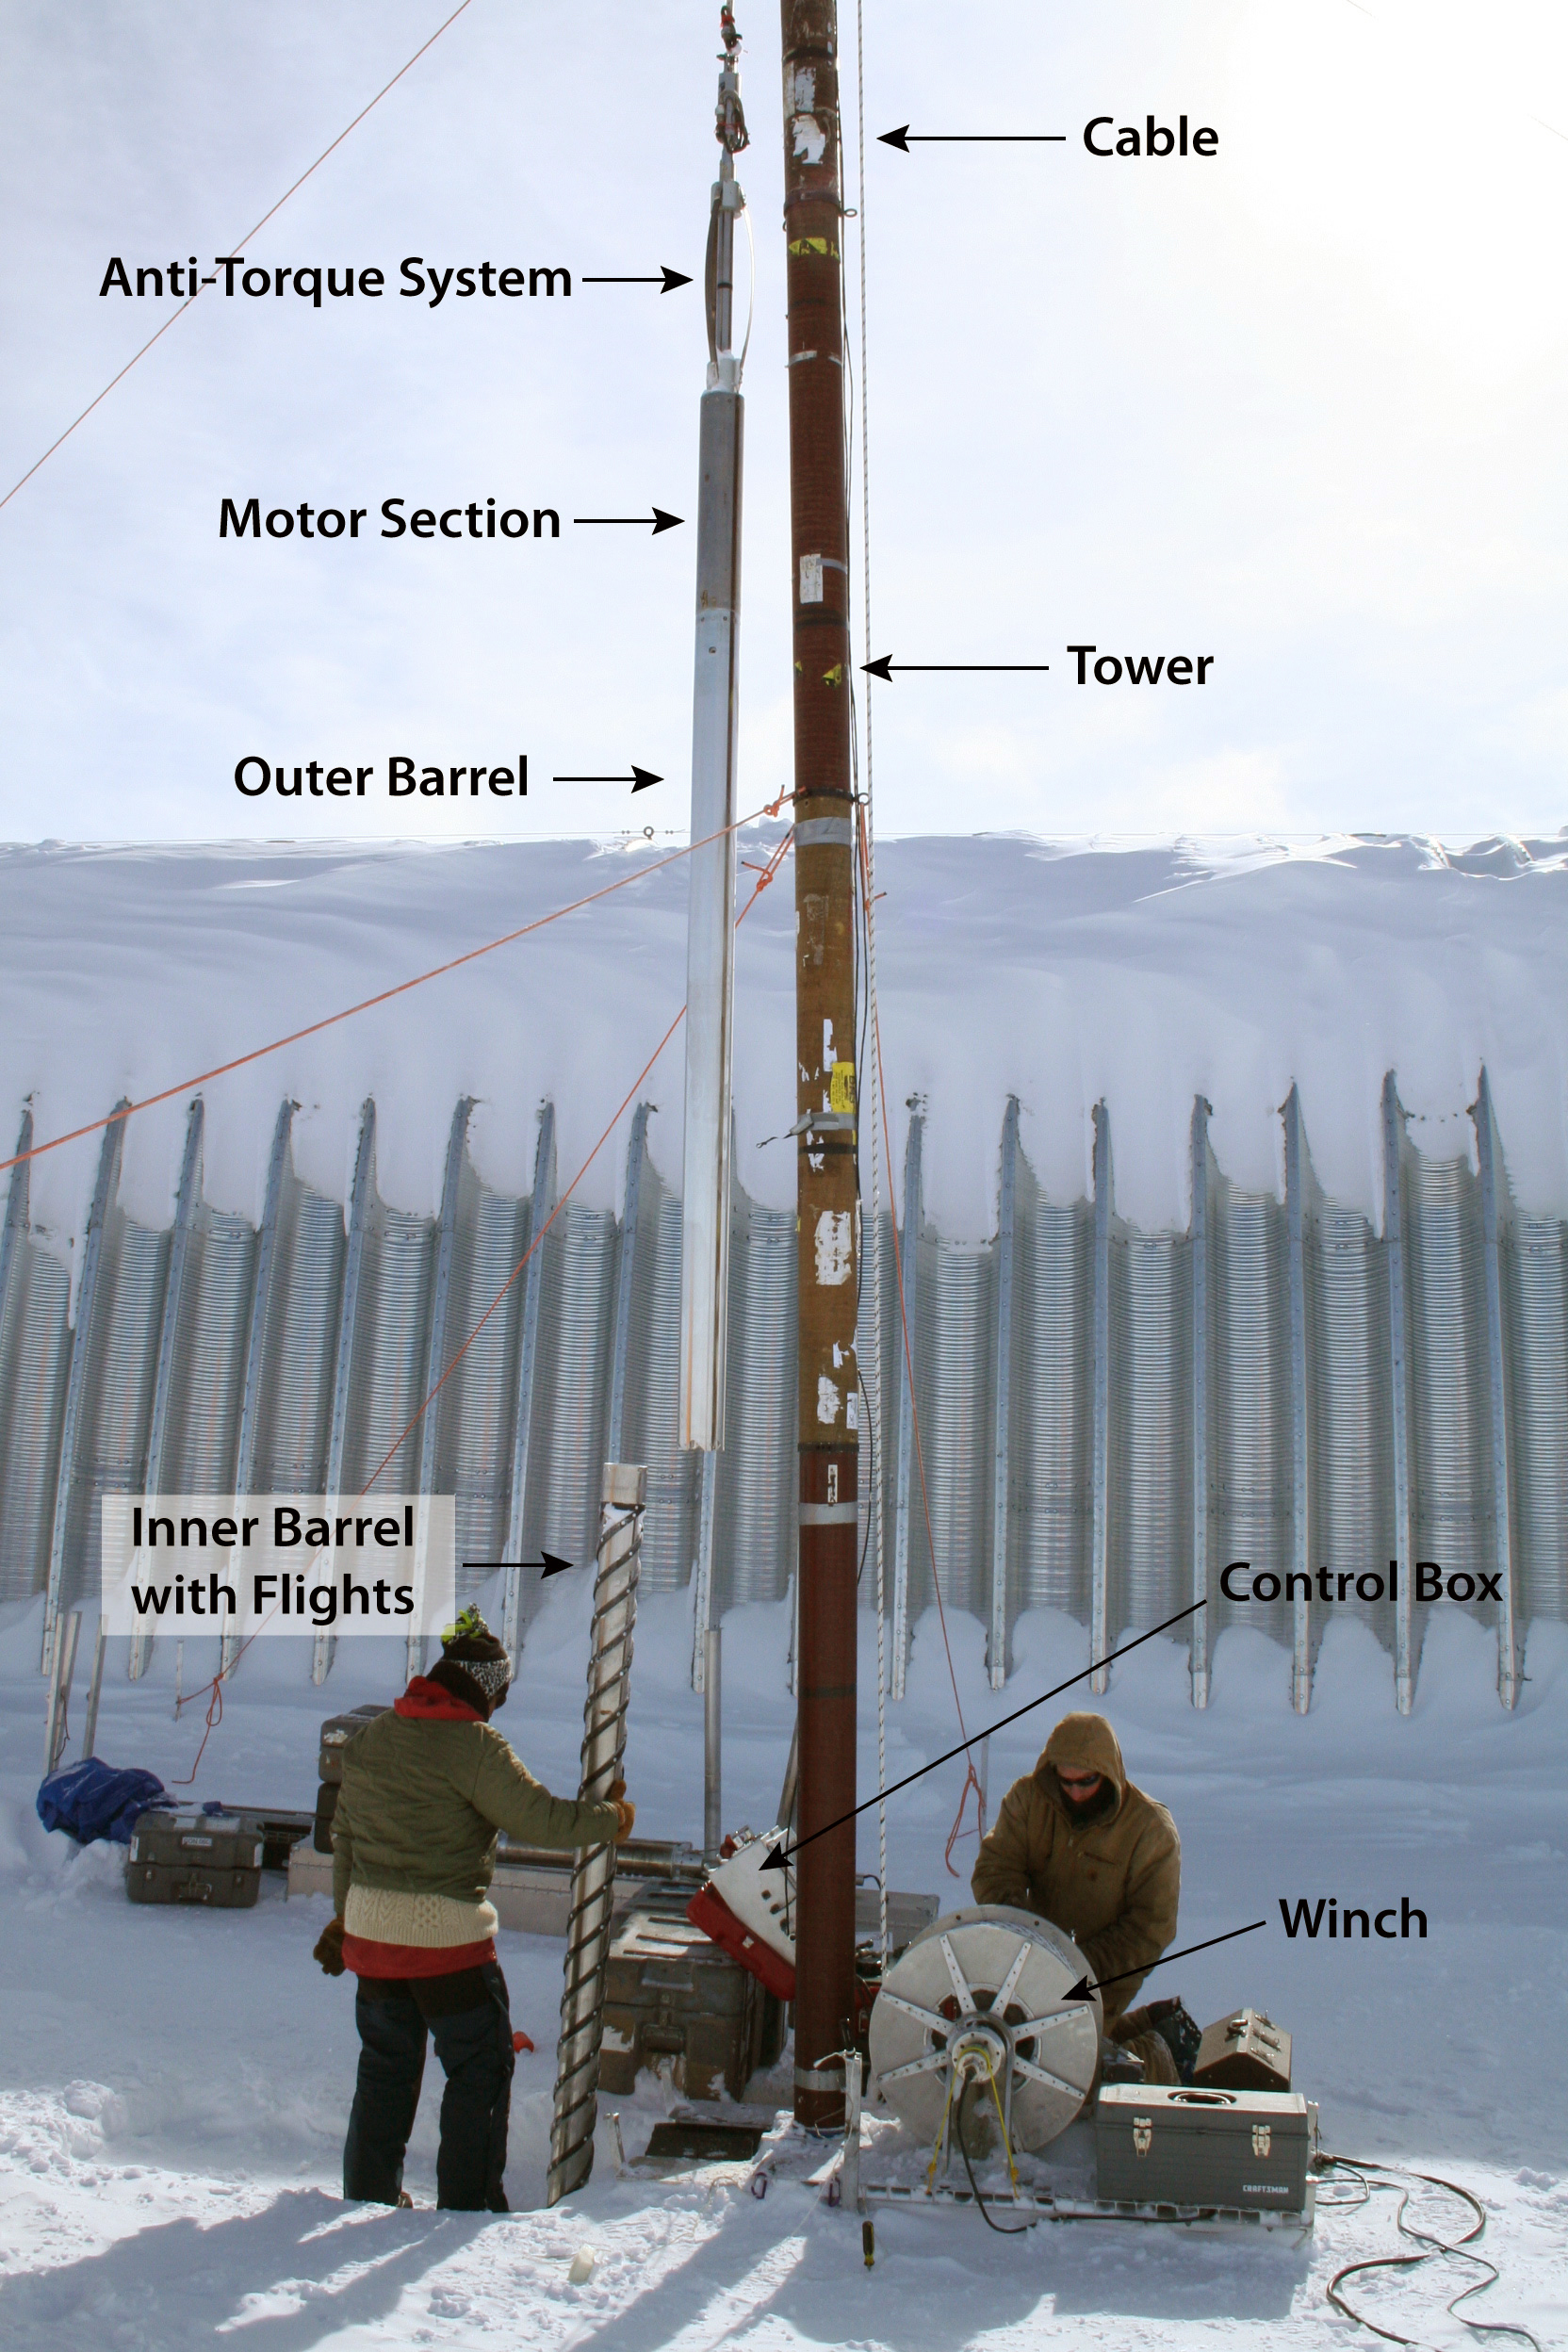 Drillers at WAIS Divide, Antarctica use the 4-Inch electromechanical drill to collect an ice core